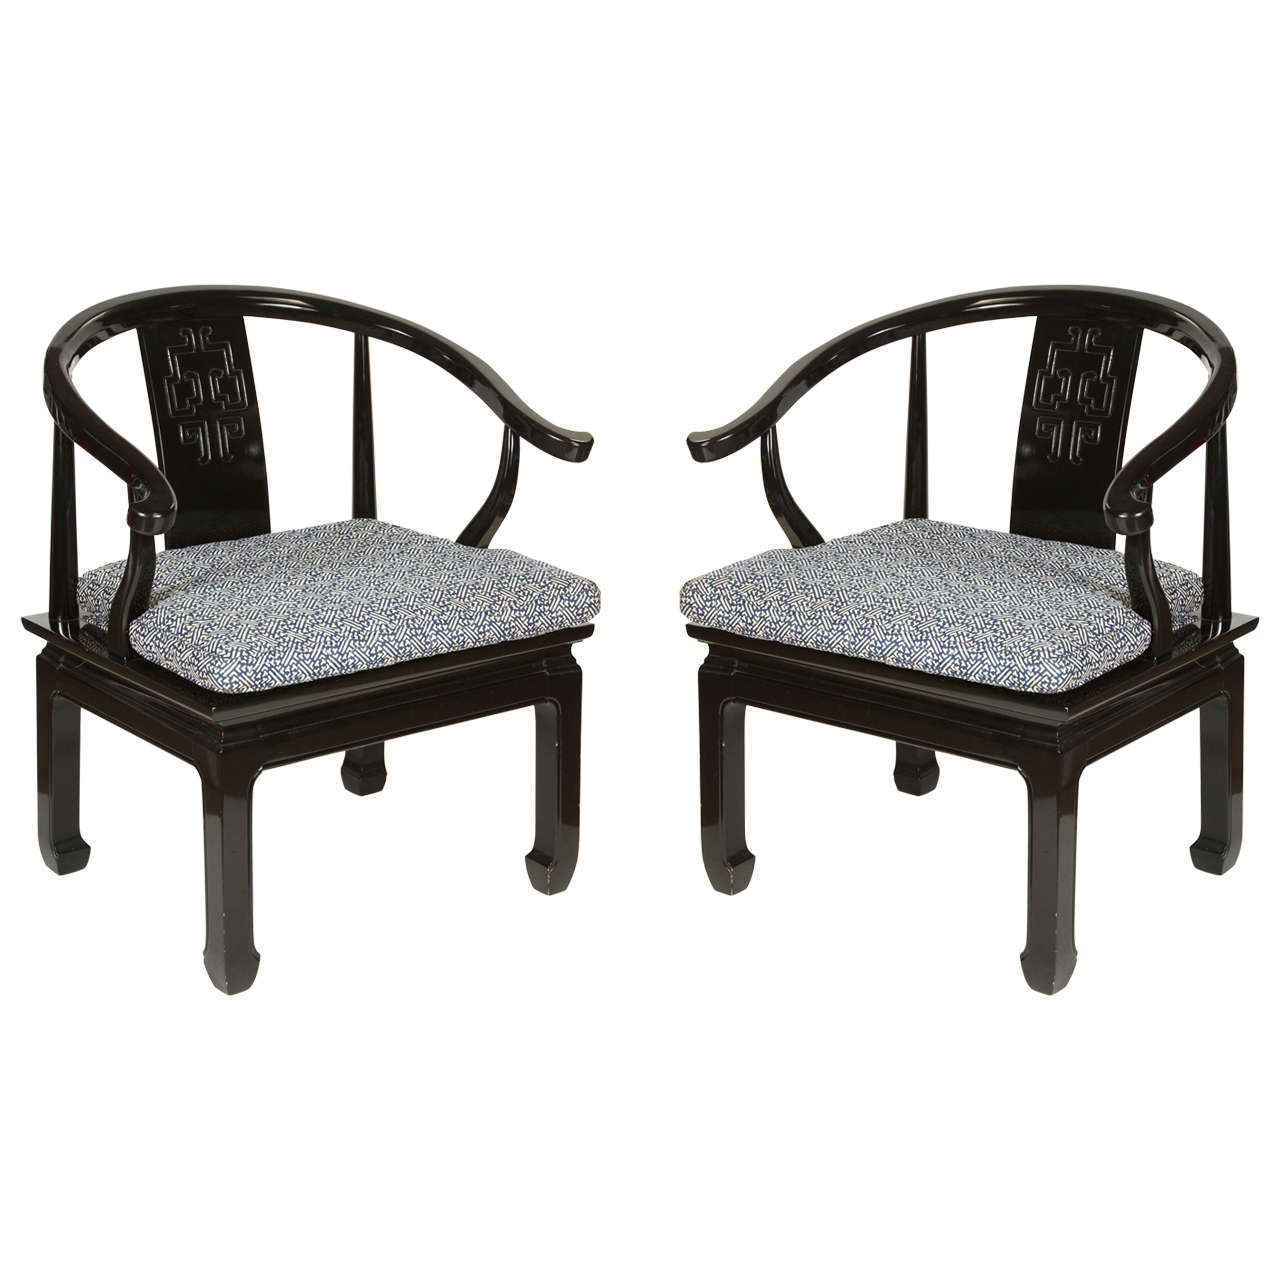 Black Ming Dynasty Lacquer Horseshoe Round Back Chairs | From a unique  collection of antique and modern armchairs at ... - Black Ming Dynasty Lacquer Horseshoe Round Back Chairs Armchairs